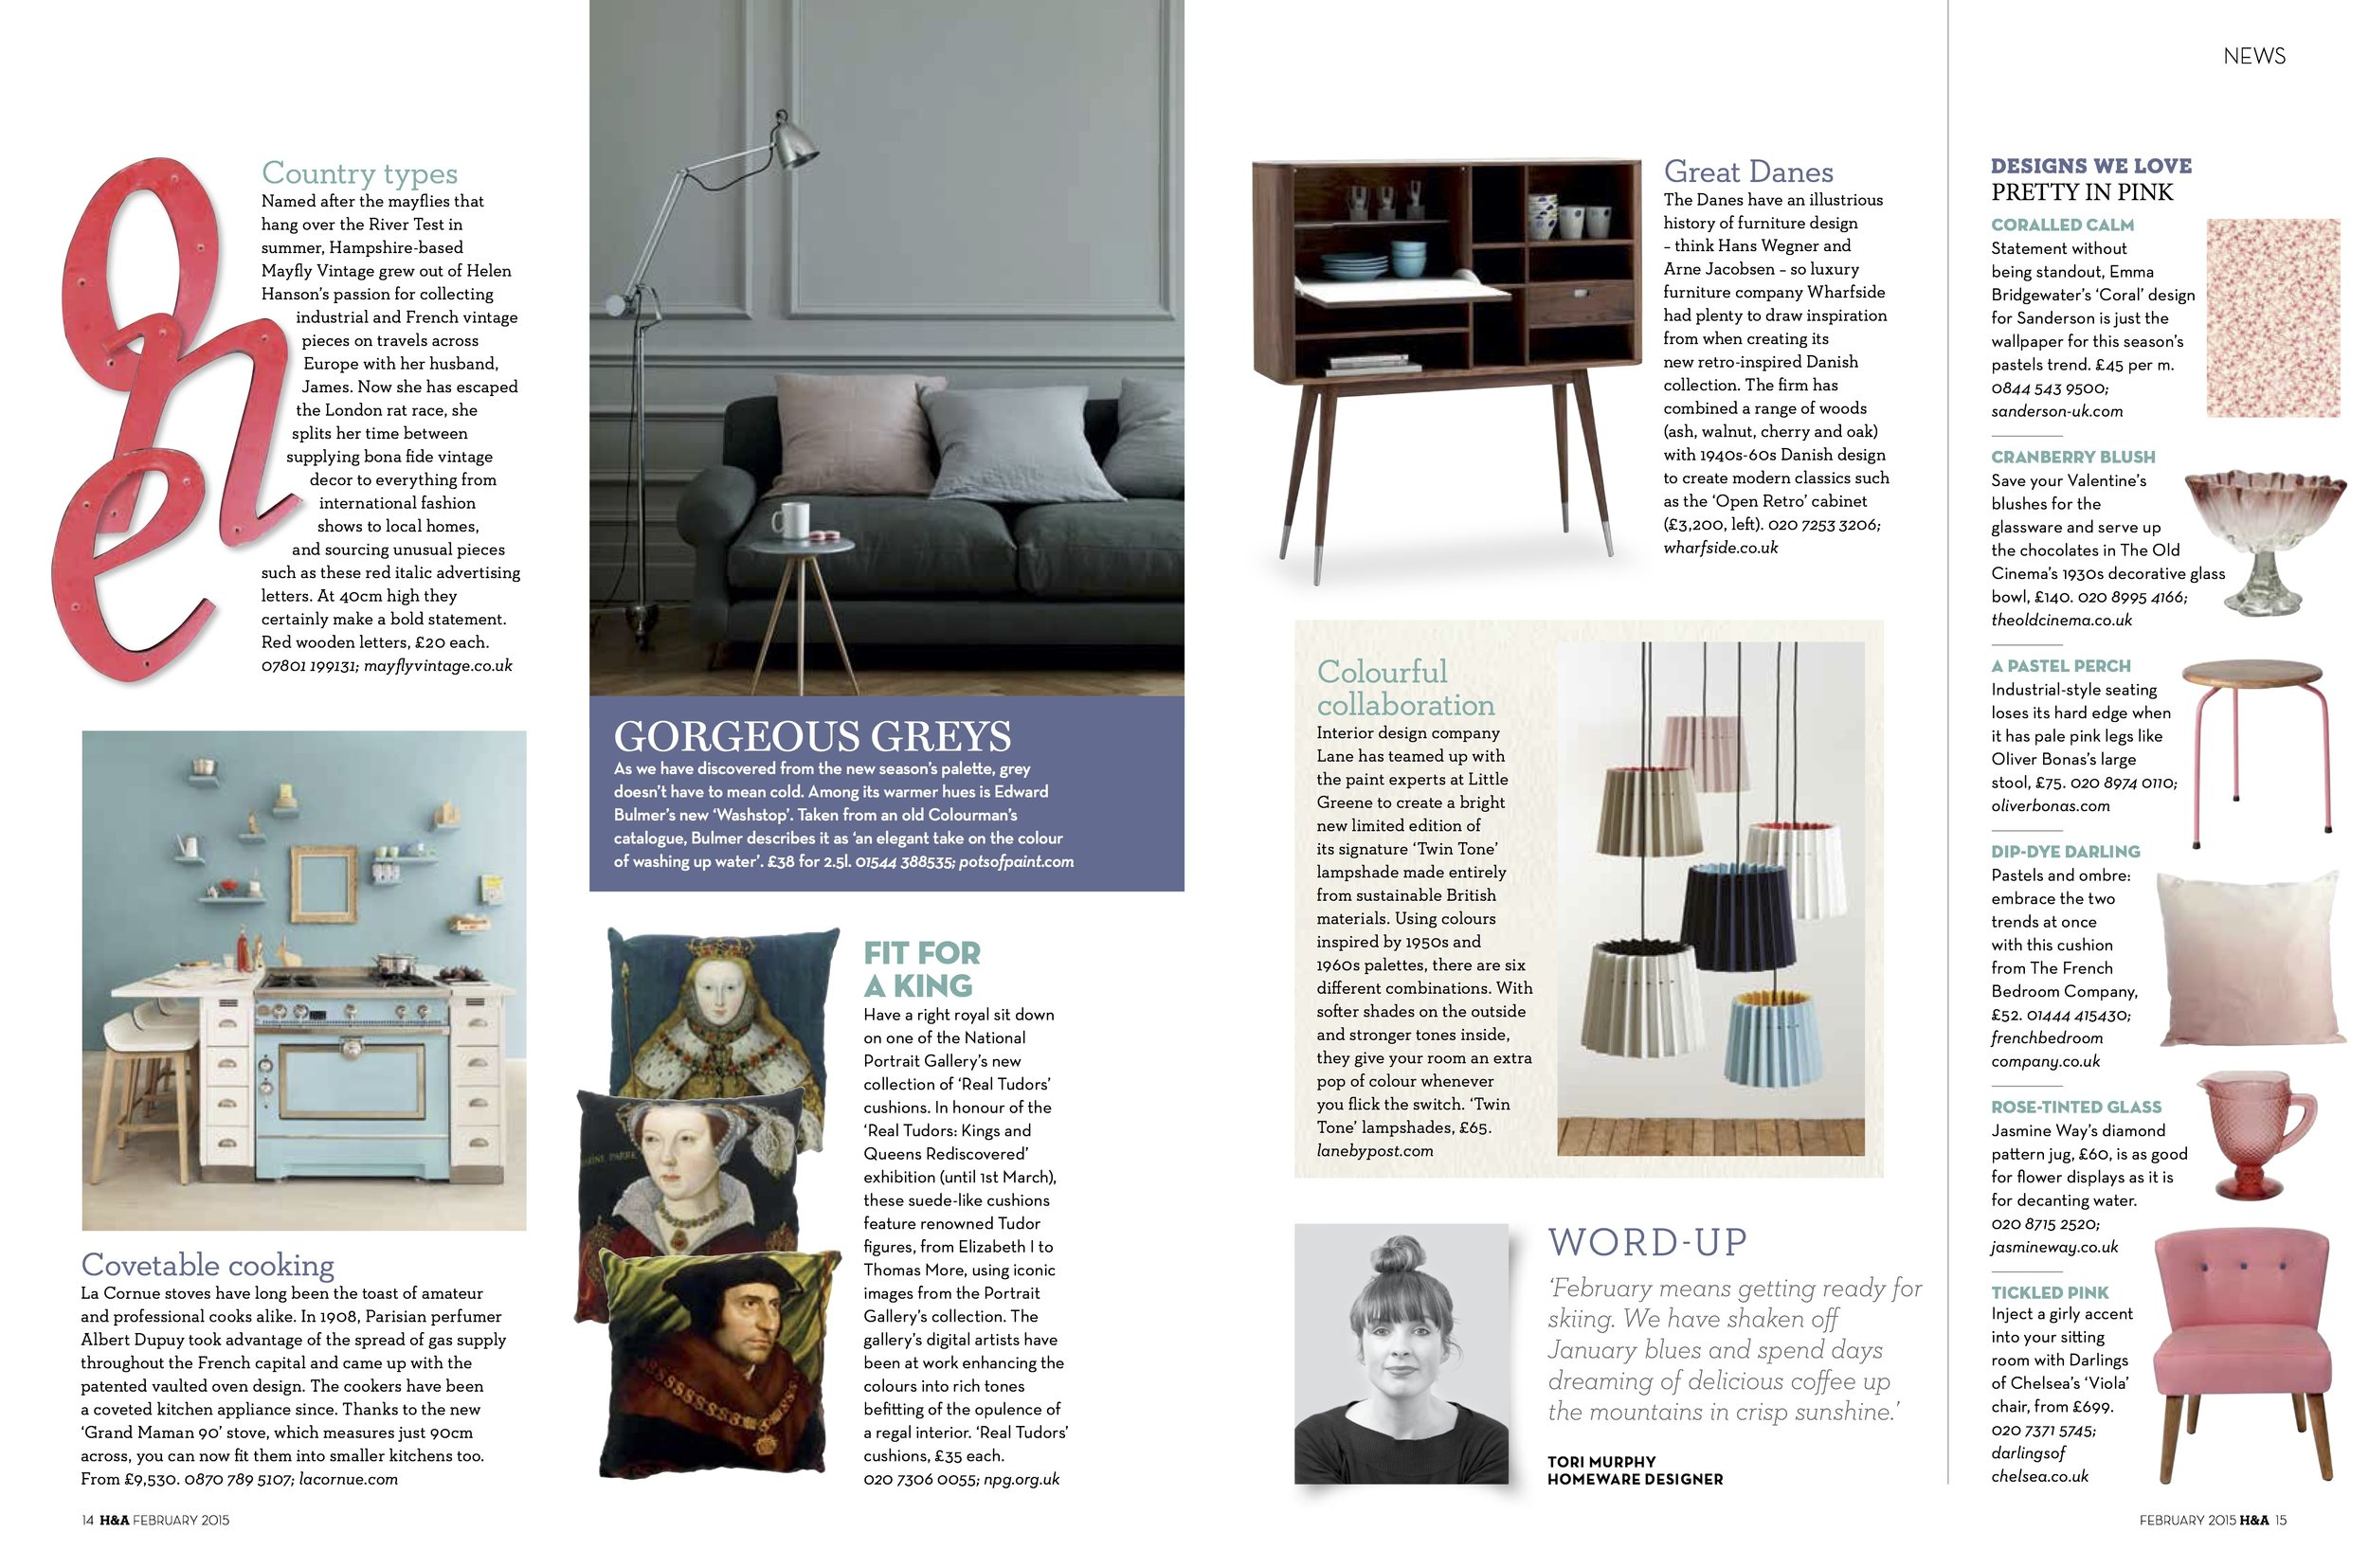 Homes & Antiques, March 2015, Lane & Little Greene Twin Tone Lampshades